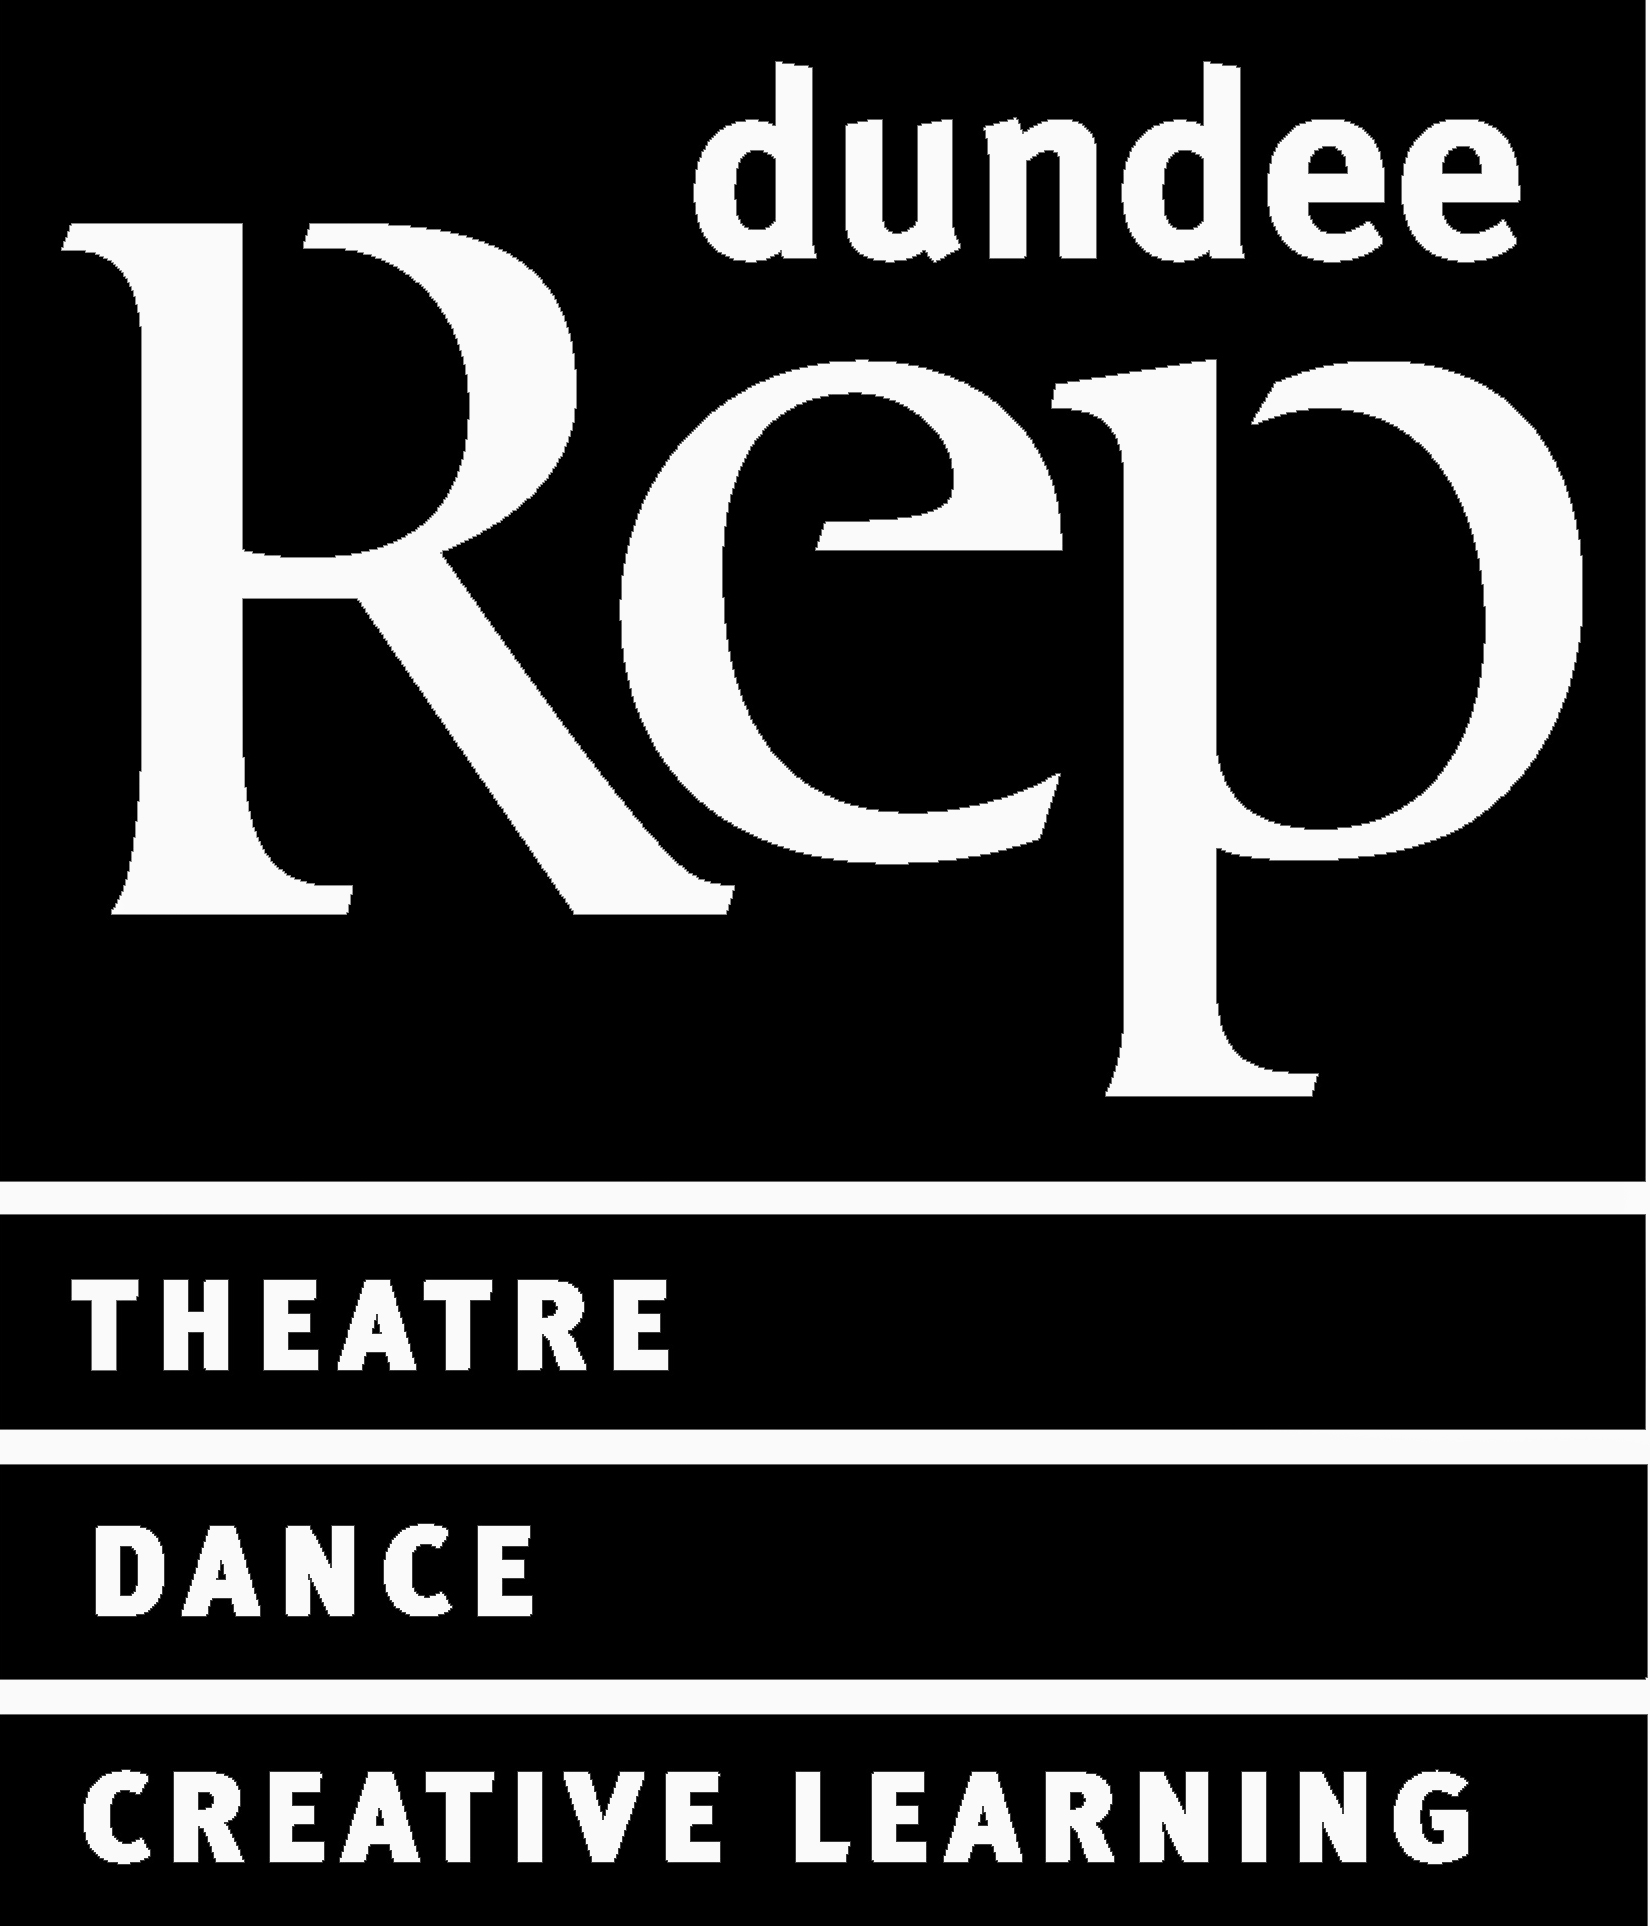 Dundee Rep Theatre